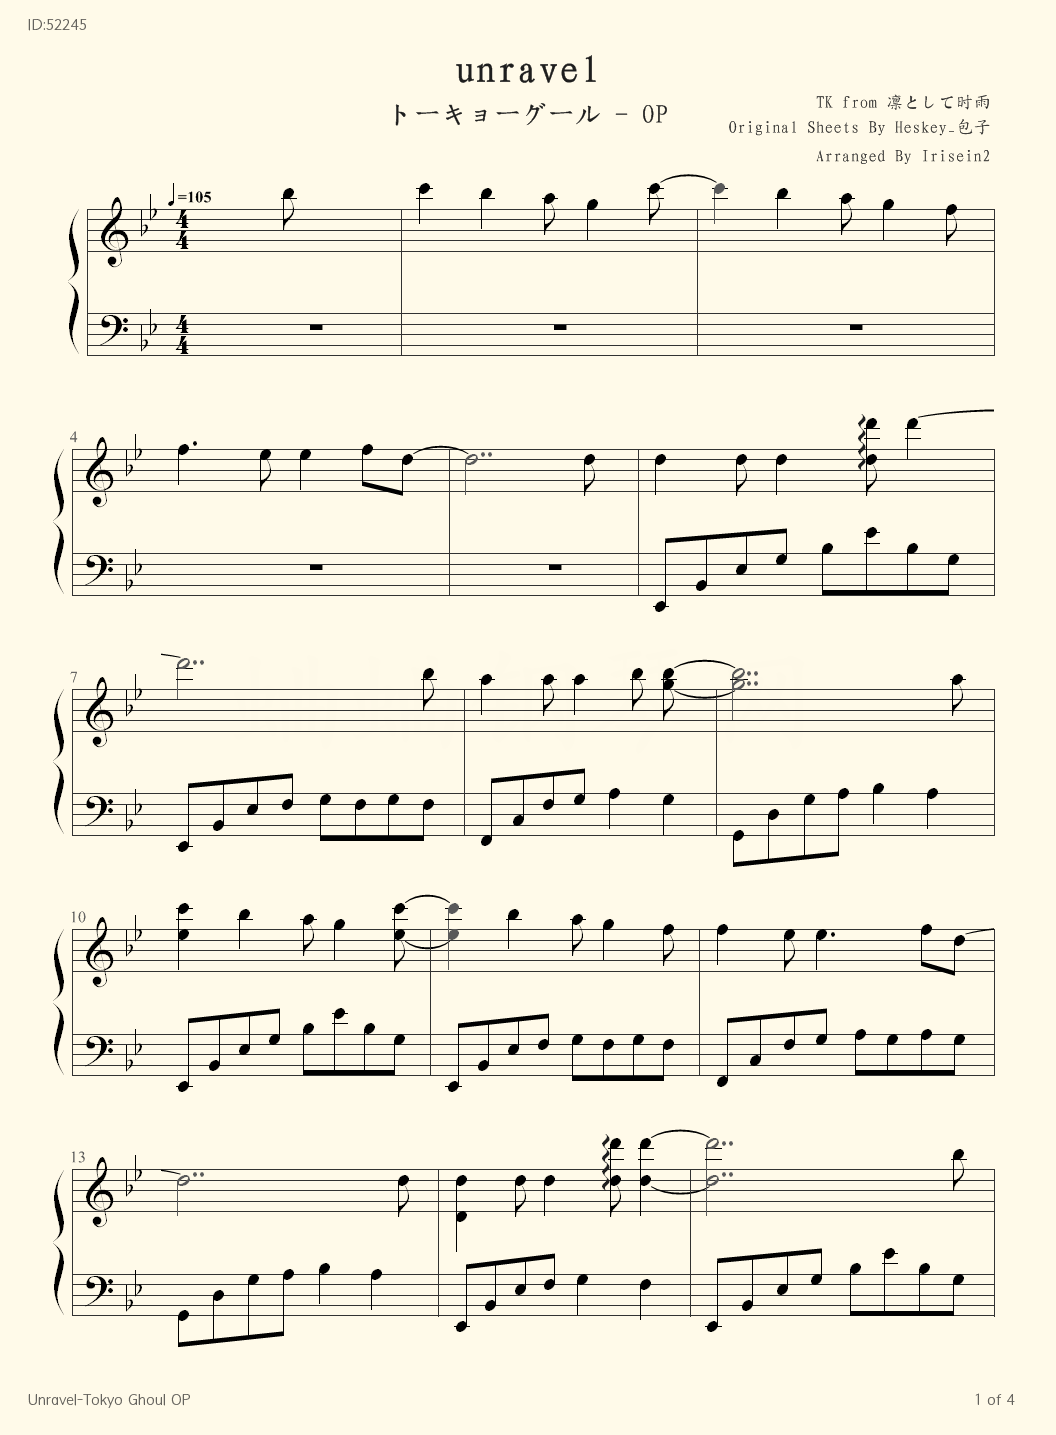 Unravel Tokyo Ghoul OP - TK from Ling Tosite Sigure - first page